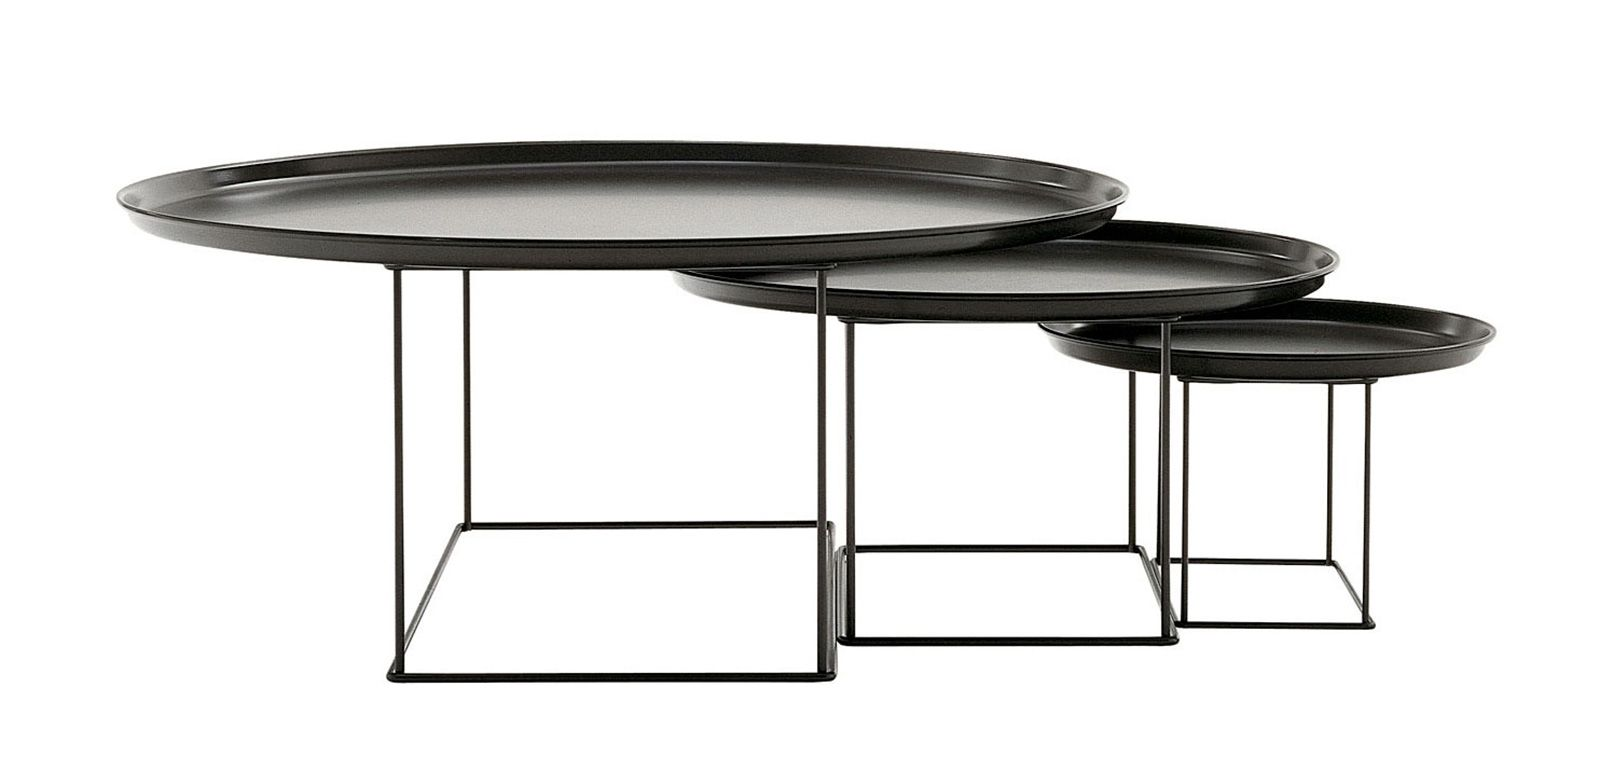 Table basse design patricia urquiola tables gigognes - Table basse gigogne design ...